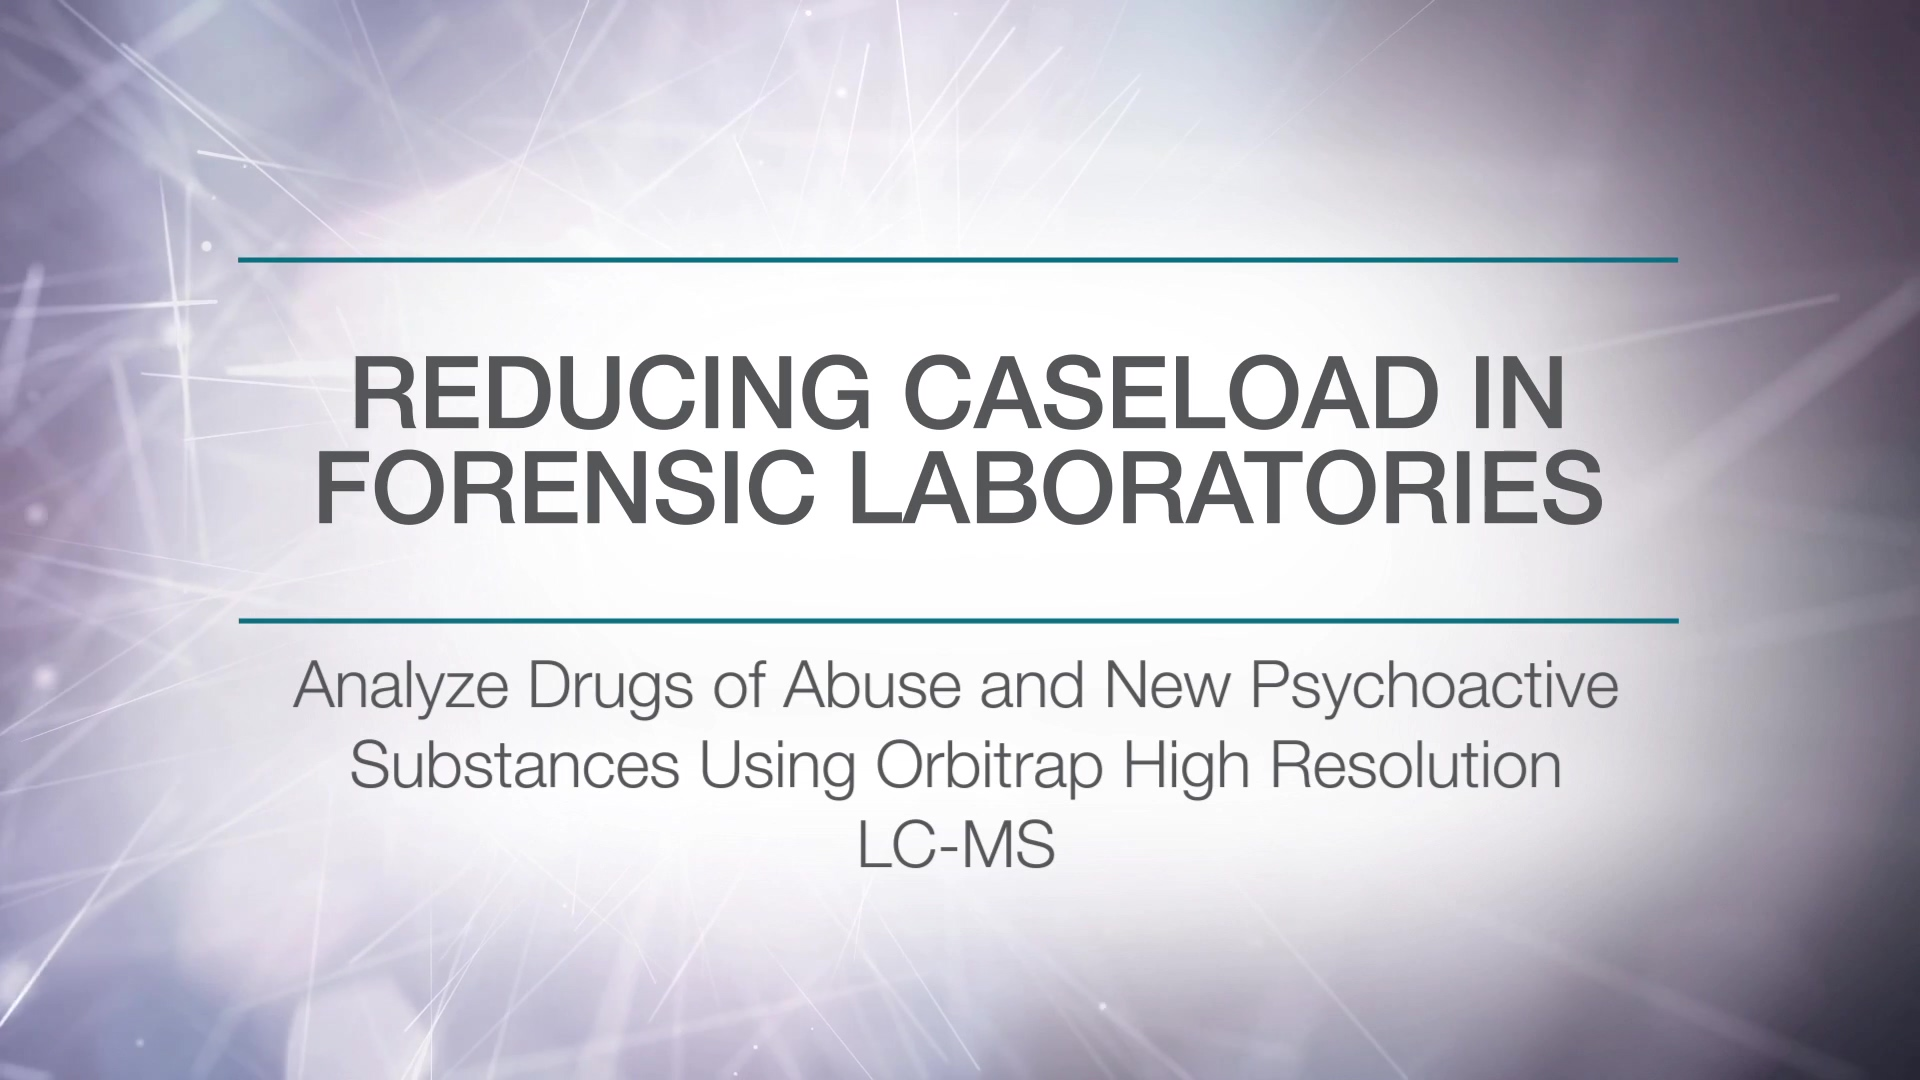 Analysis of Drugs of Abuse and Novel Psychoactive Substances in a Forensic Lab